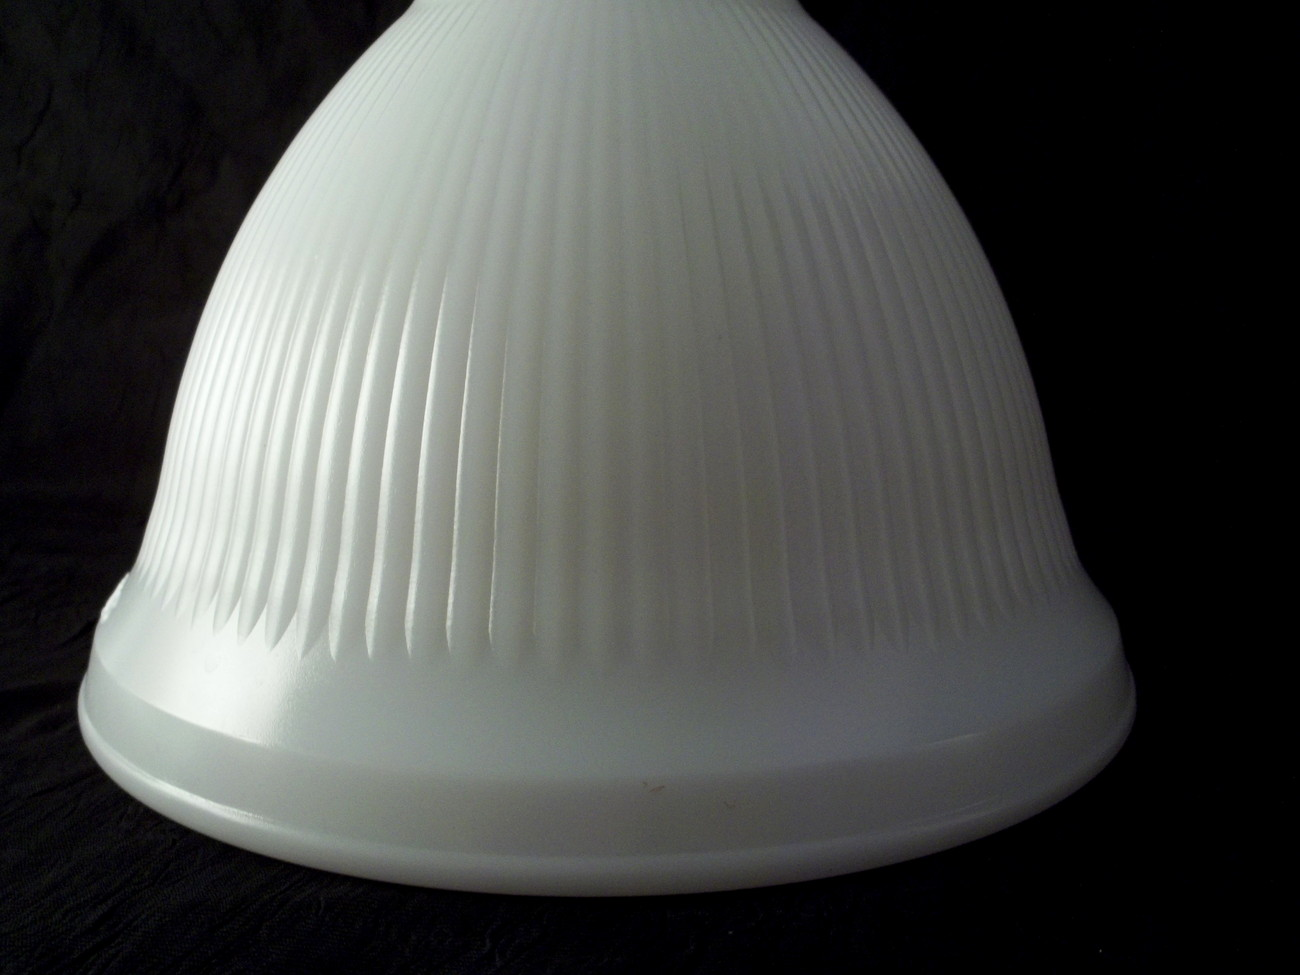 Country table lamps glt230ptorchiere shade torchiere lamp shades on vintage milk glass torchiere lamp shade white ribbed lamp shades aloadofball Choice Image